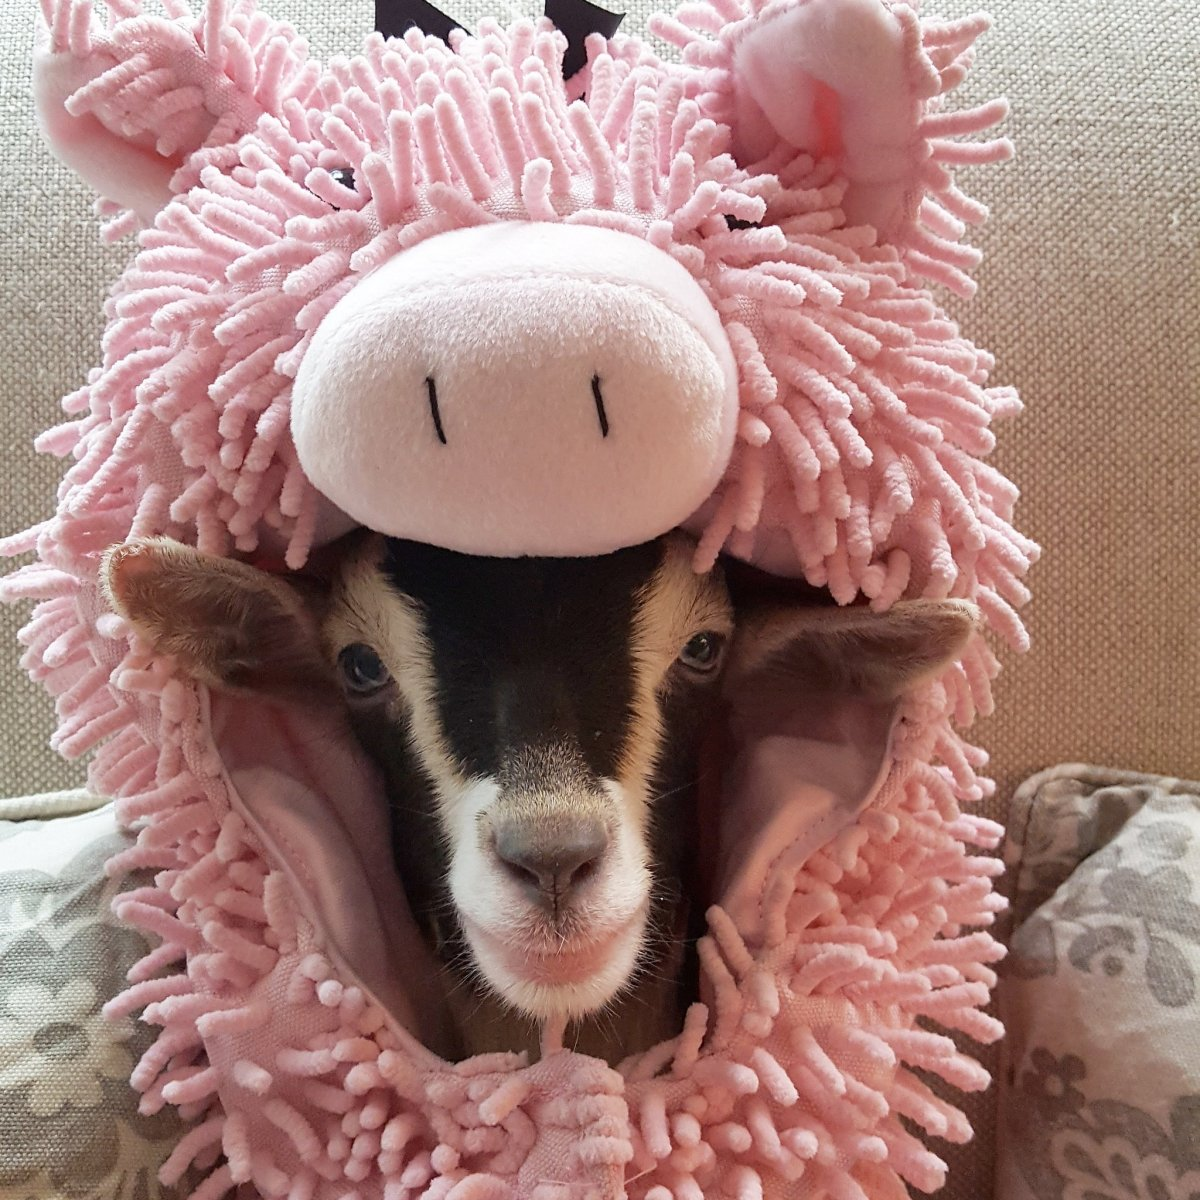 Polly as a Pig - Source: Twitter/Goats of Anarchy